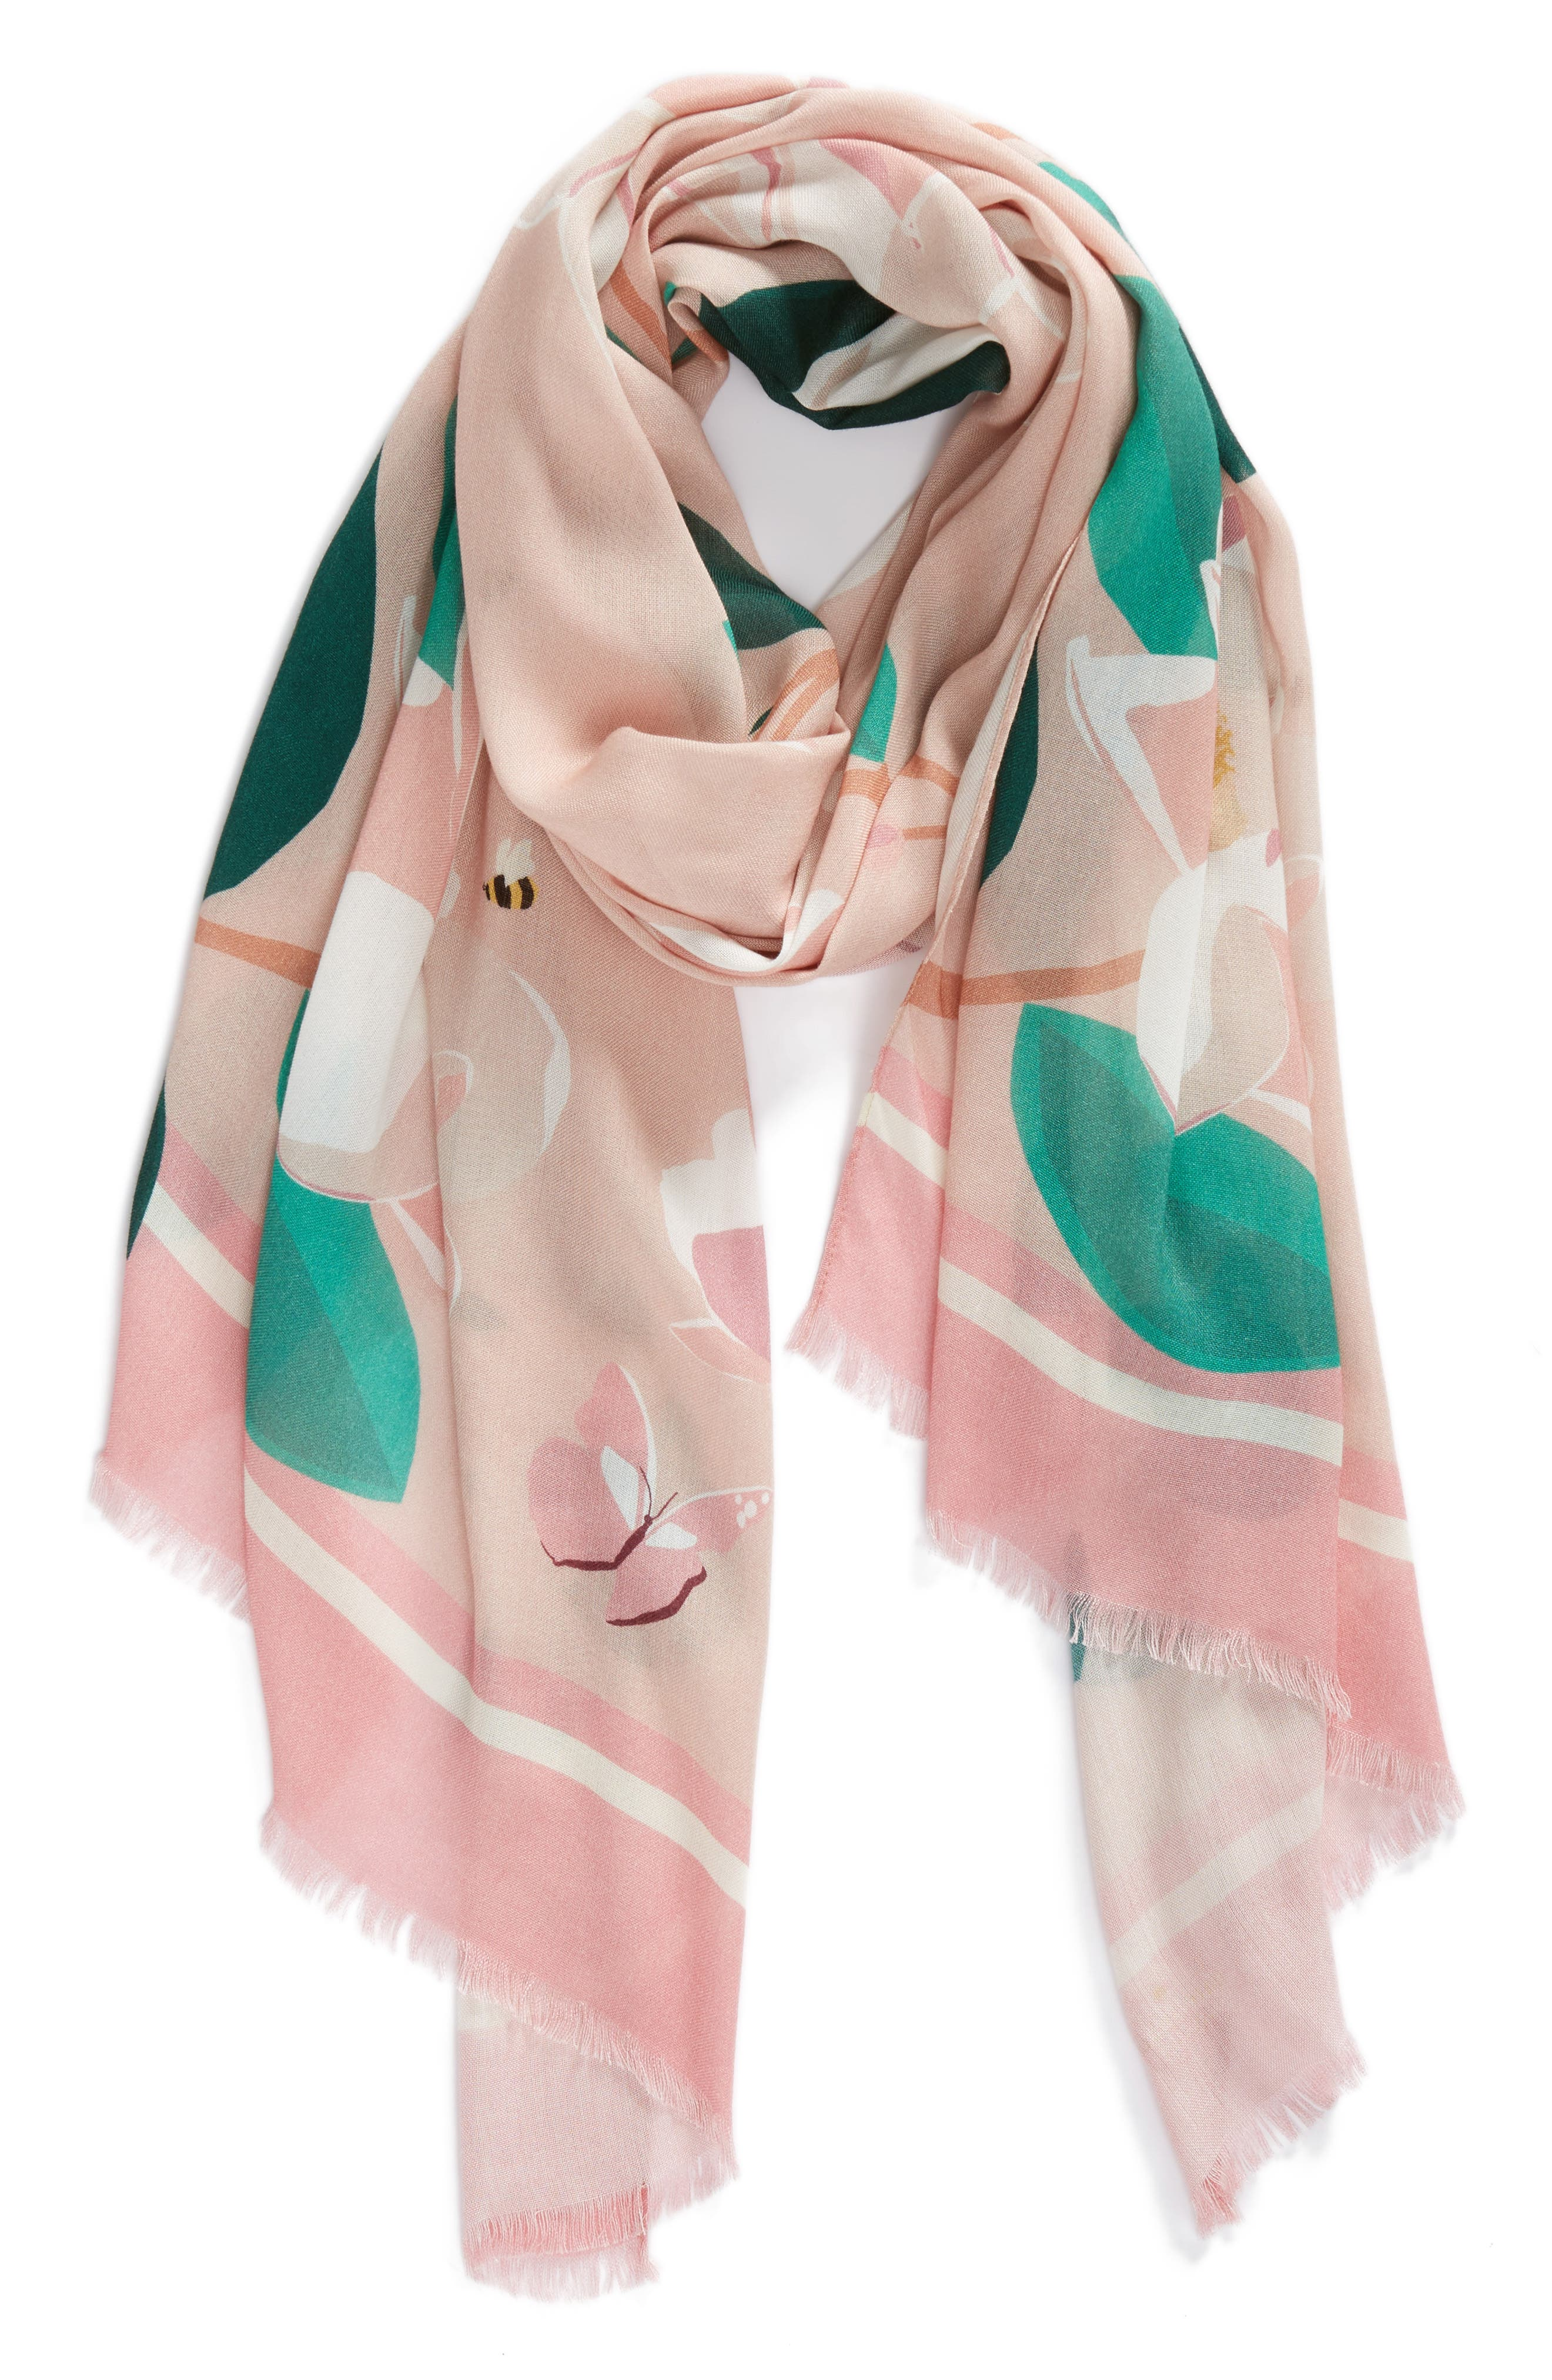 magnolia scarf,                             Alternate thumbnail 3, color,                             Cameo Pink